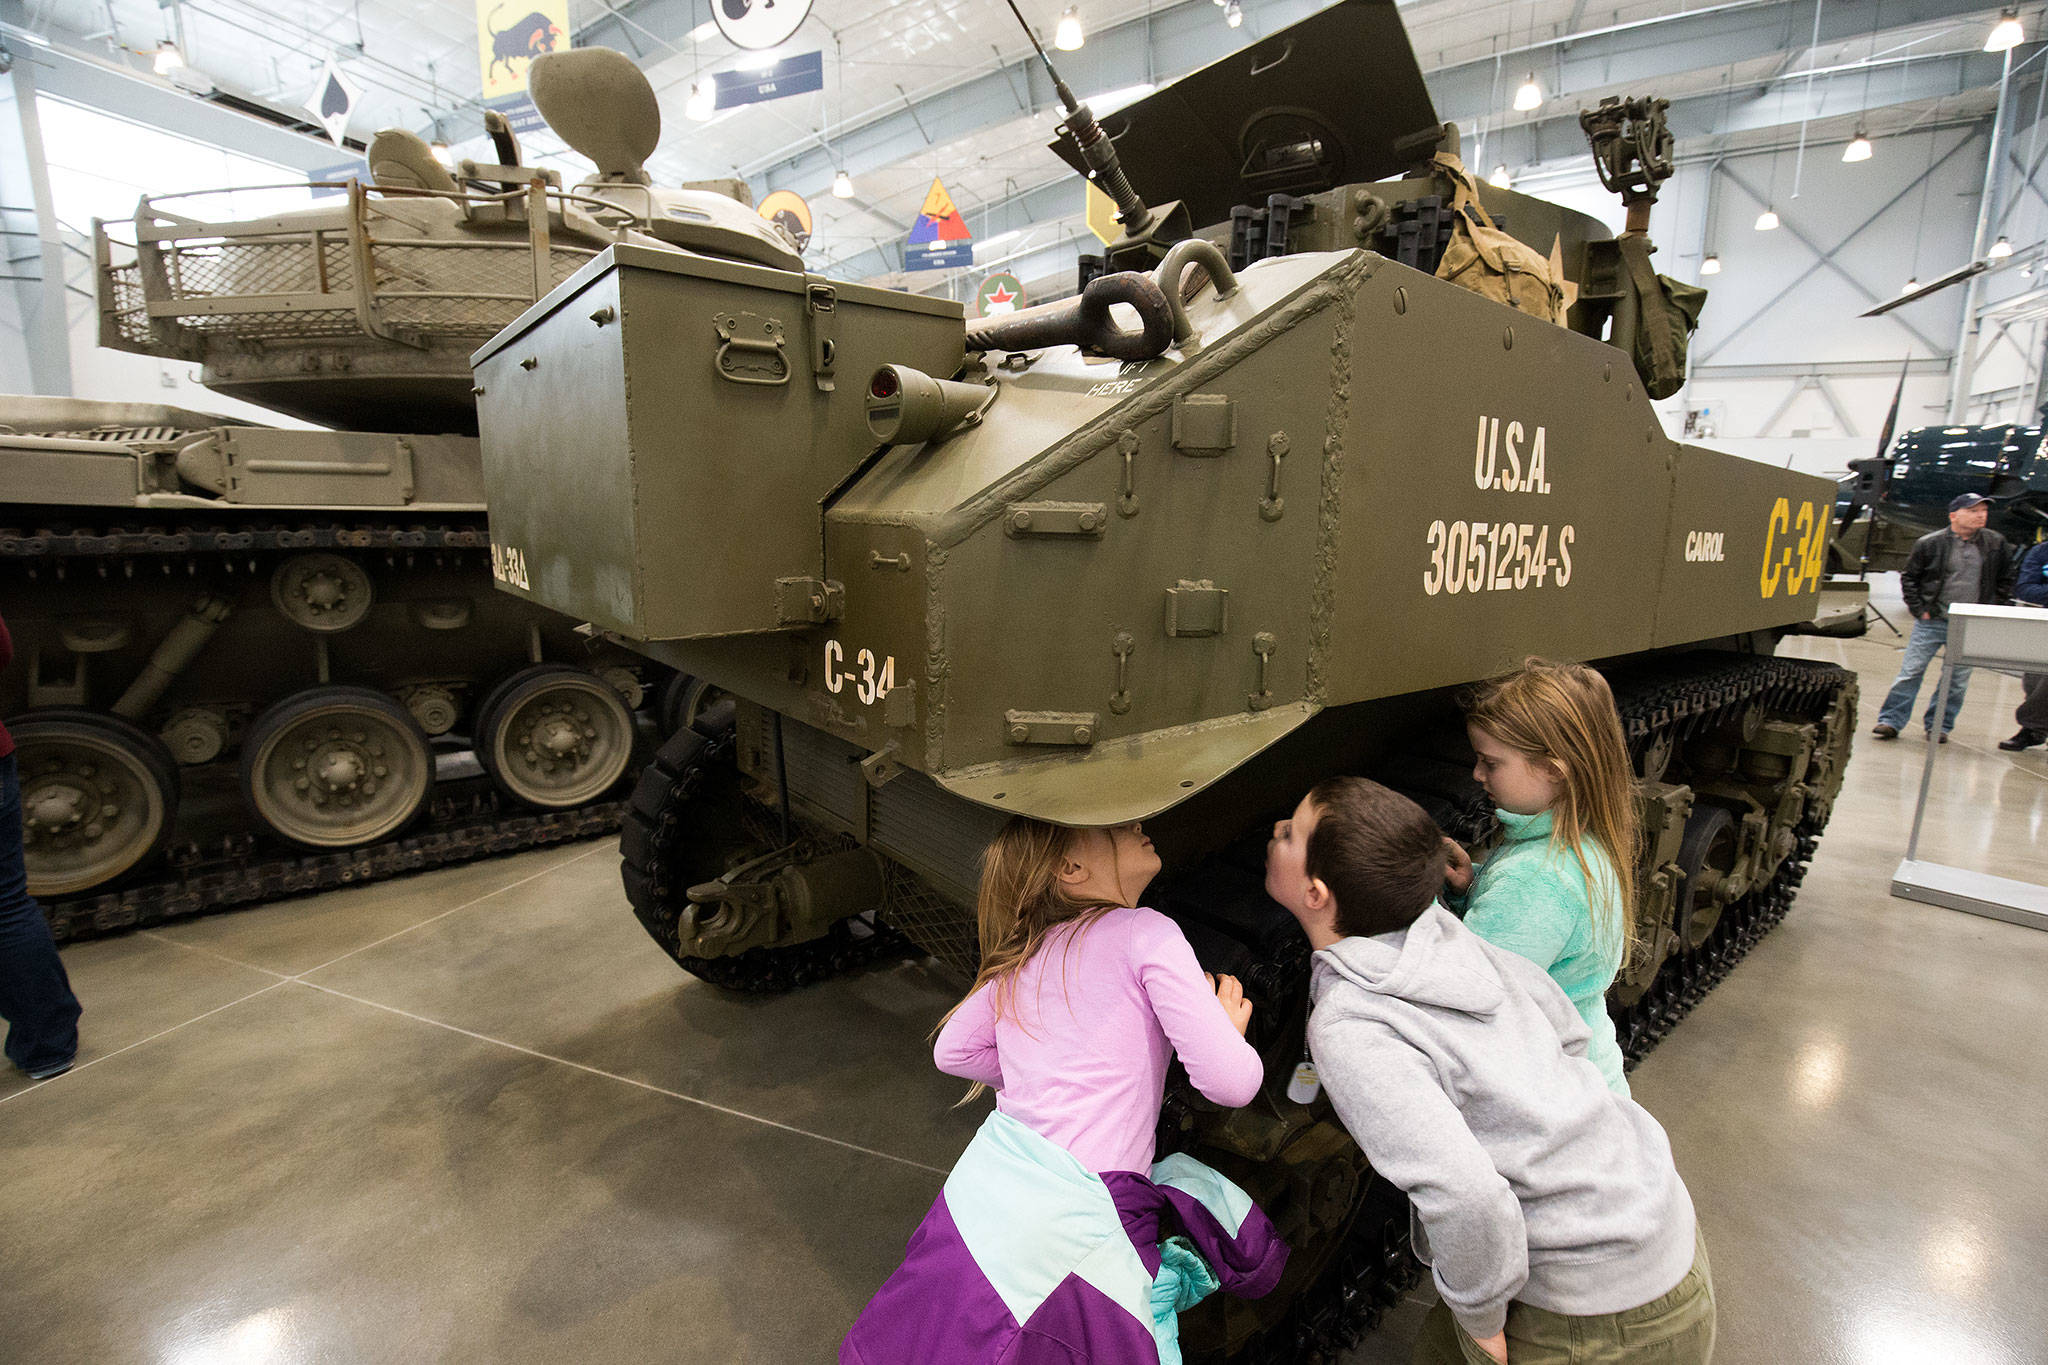 Visitors at the Flying Heritage & Combat Armor Museum at Paine Field in Everett in 2018. (Andy Bronson / The Herald)